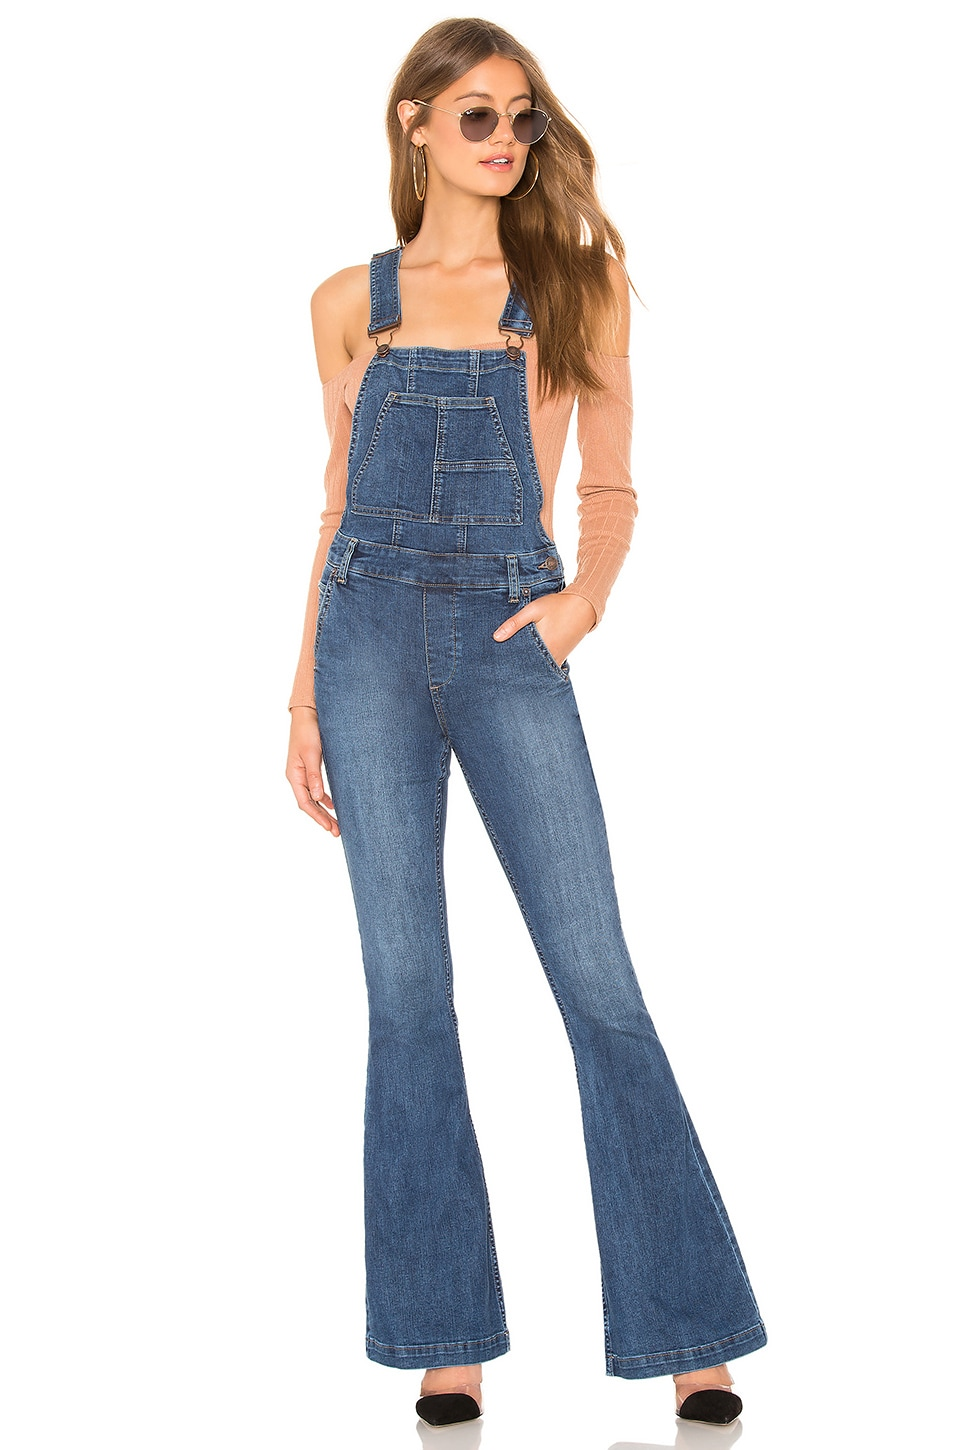 Free People Carly Flare Overall in Blue